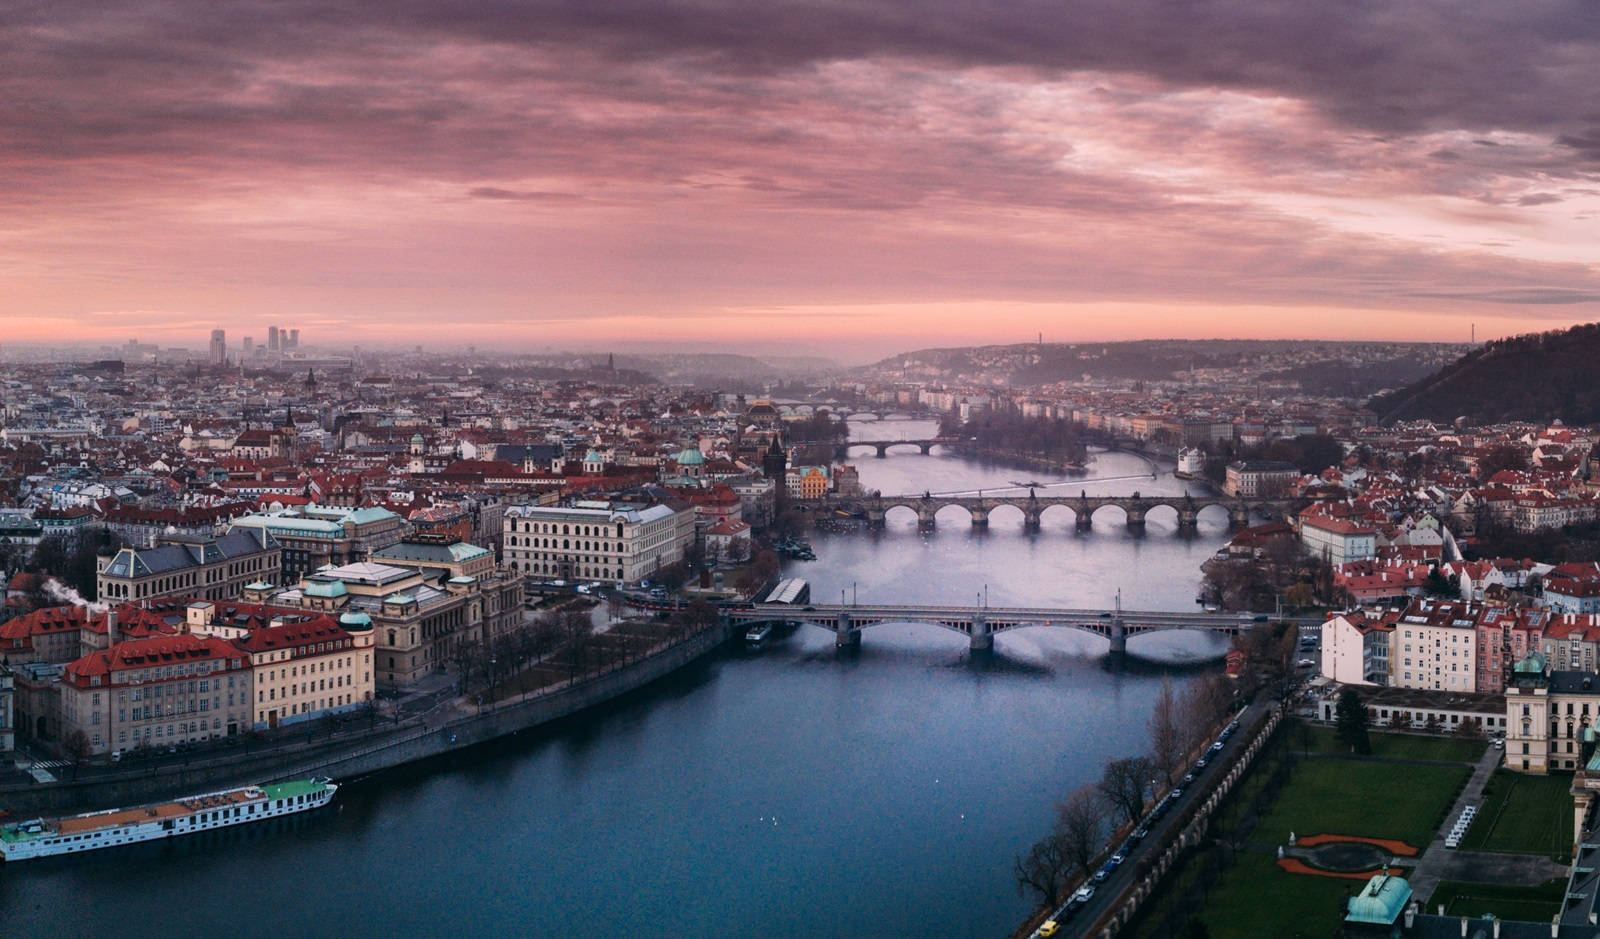 10 fun facts about Prague to know before you visit it